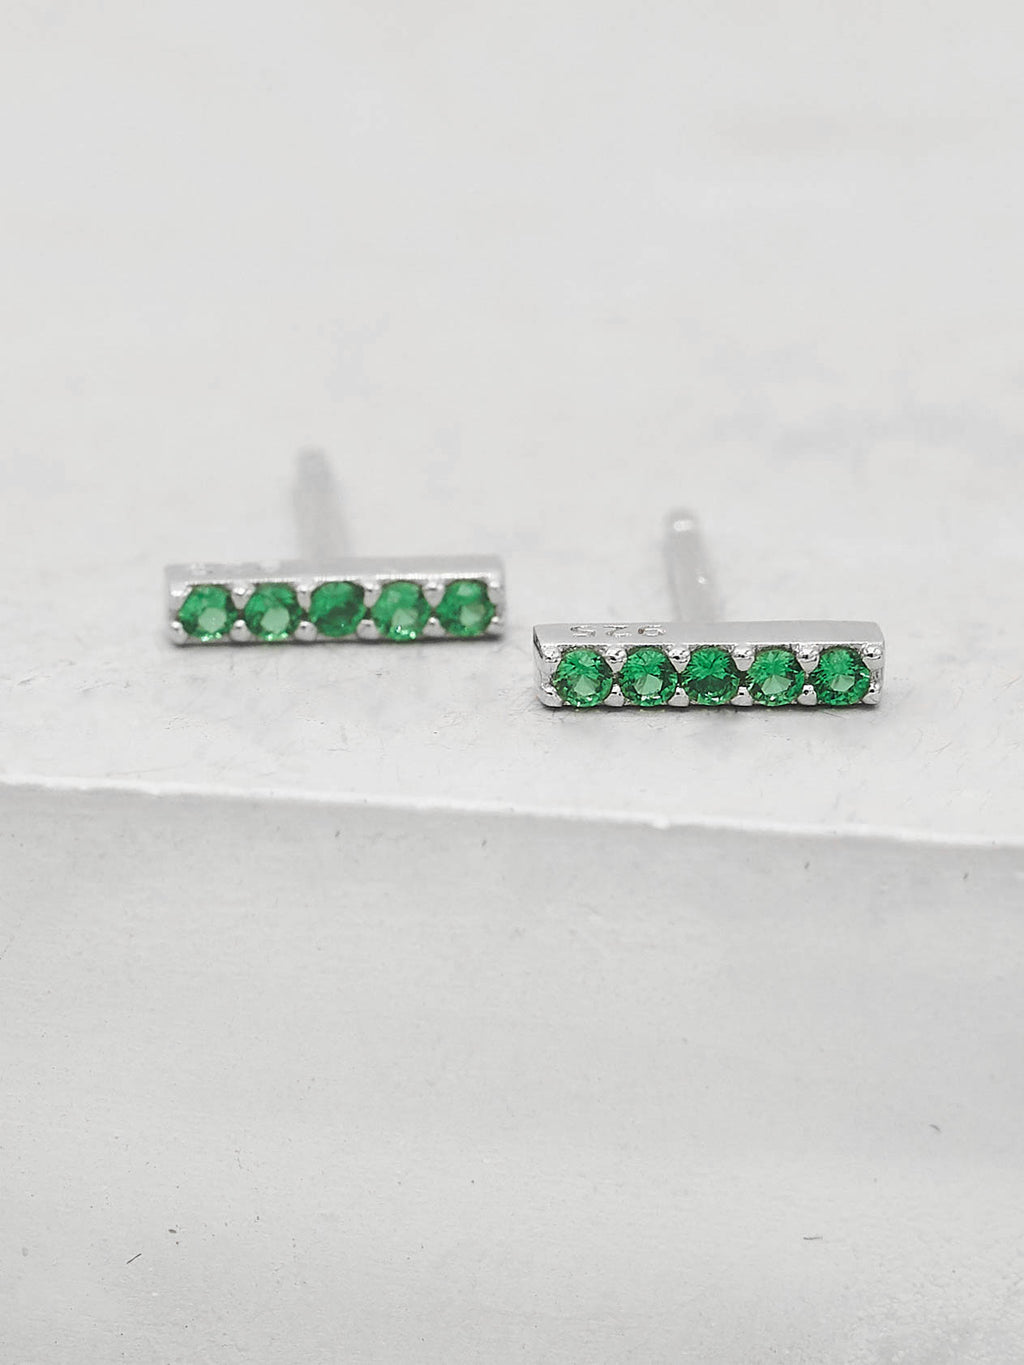 Green Emerald CZ Bar design Rhodium Plated Stud Earrings by The Faint Hearted Jewelry